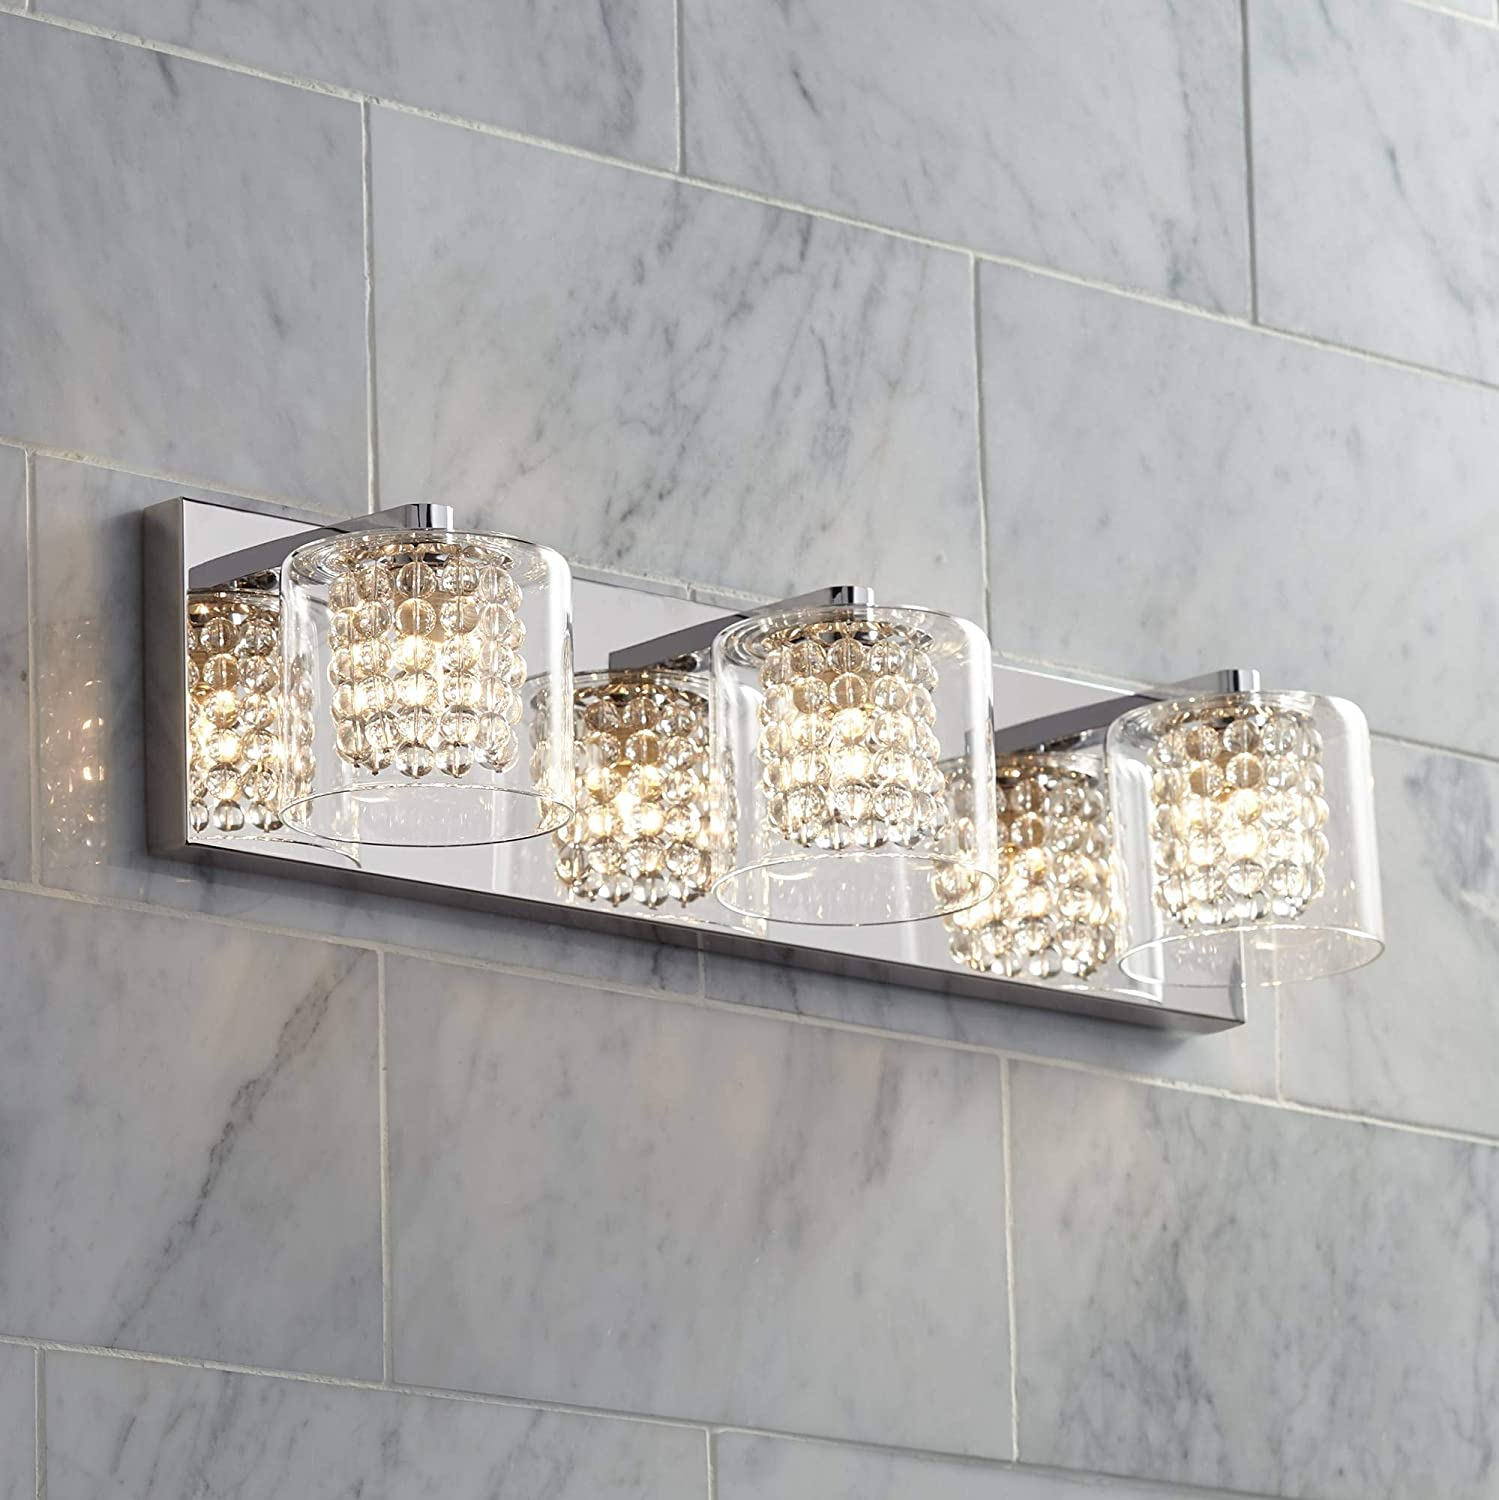 Miraculous Possini Euro Coco 20 1 2 Wide Chrome 3 Light Bath Light Possini Euro Design Home Interior And Landscaping Staixmapetitesourisinfo